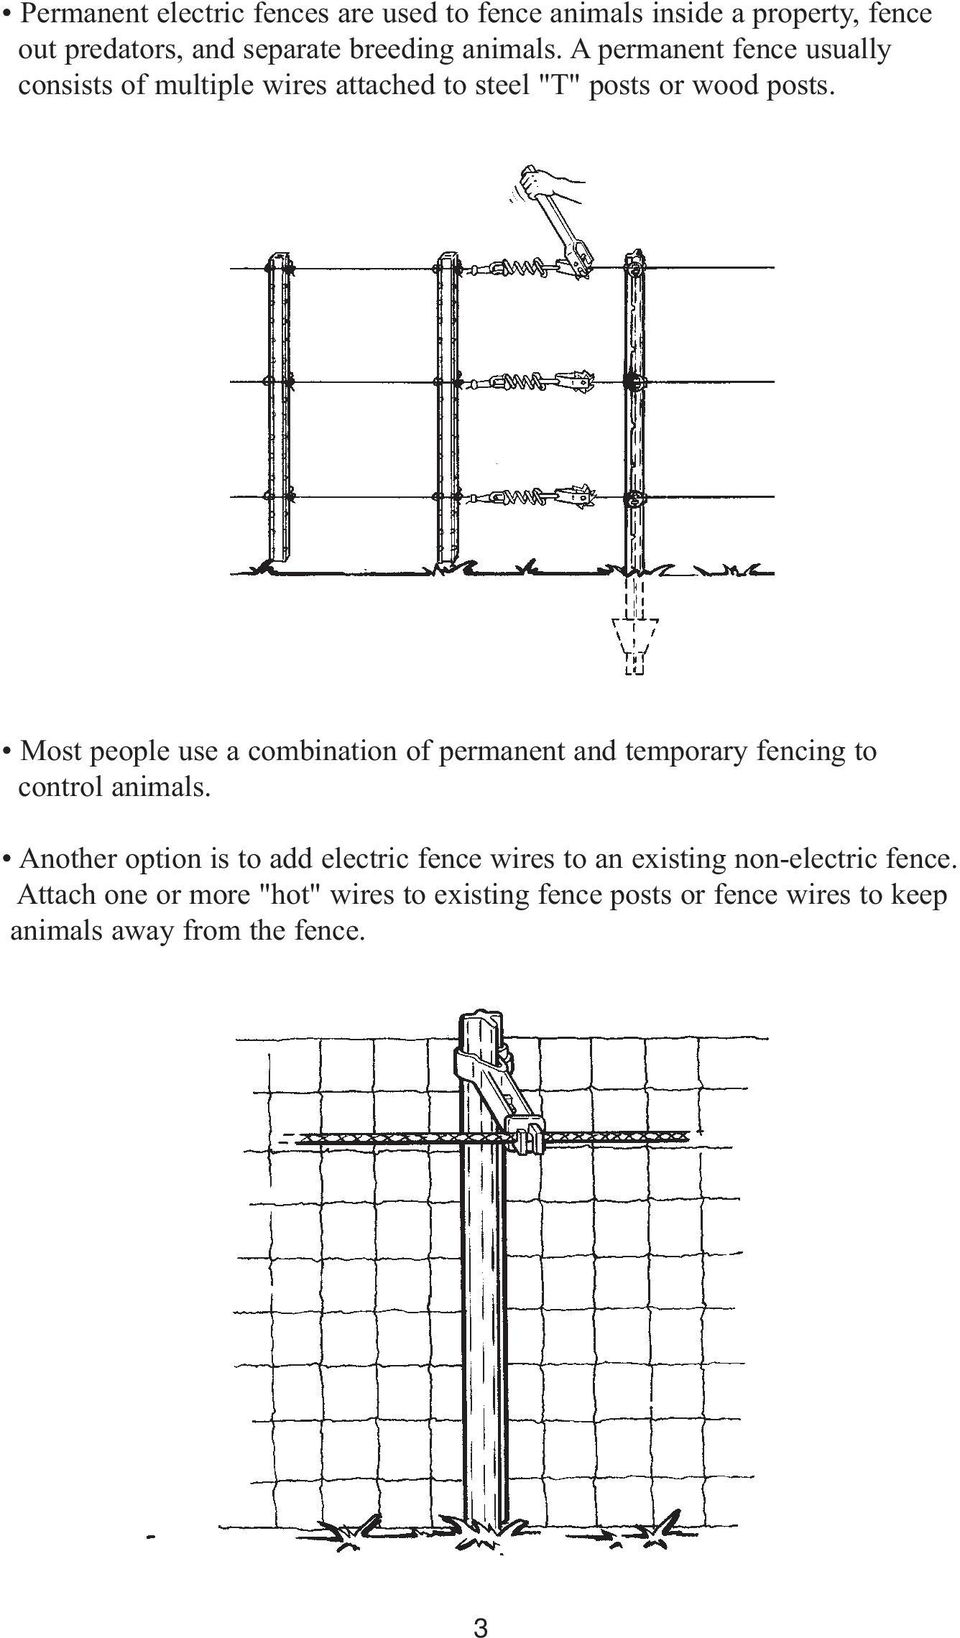 Electric Fencing Made Easy Pdf Wiring Diagram Fence Energiser Most People Use A Combination Of Permanent And Temporary To Control Animals